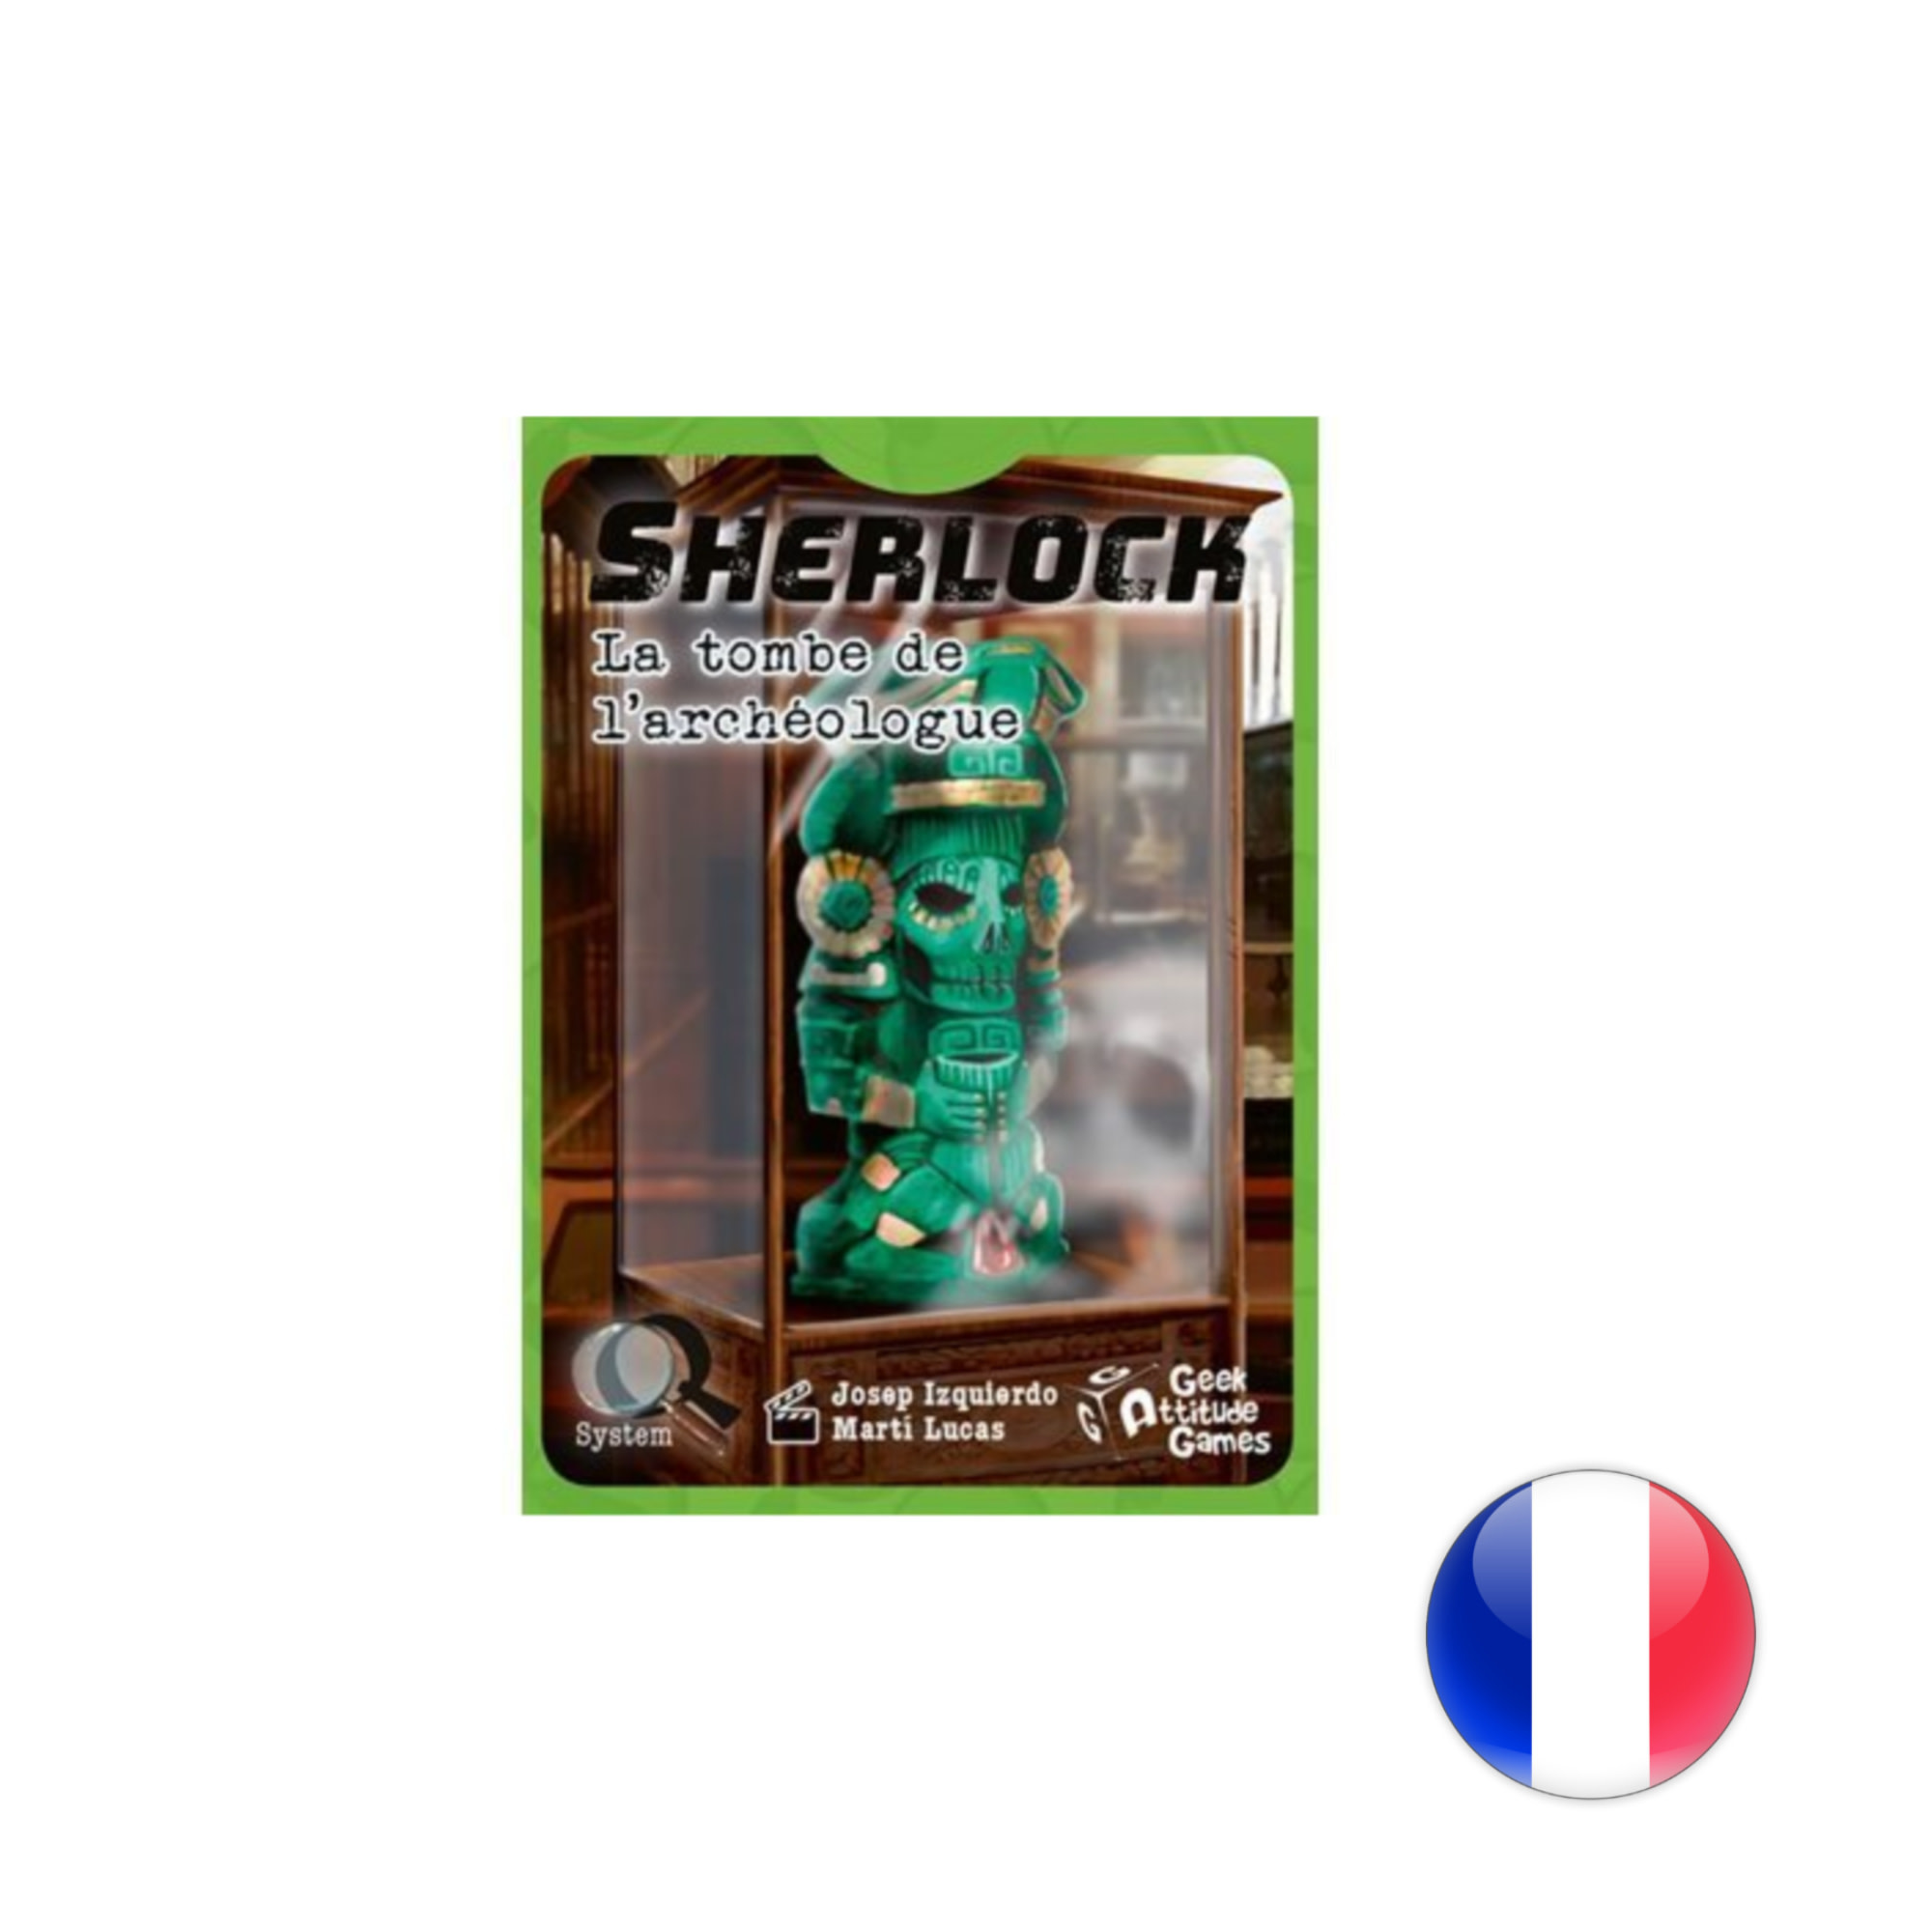 Asmodee Q System serie - Sherlock : La tombe de l'archéologue